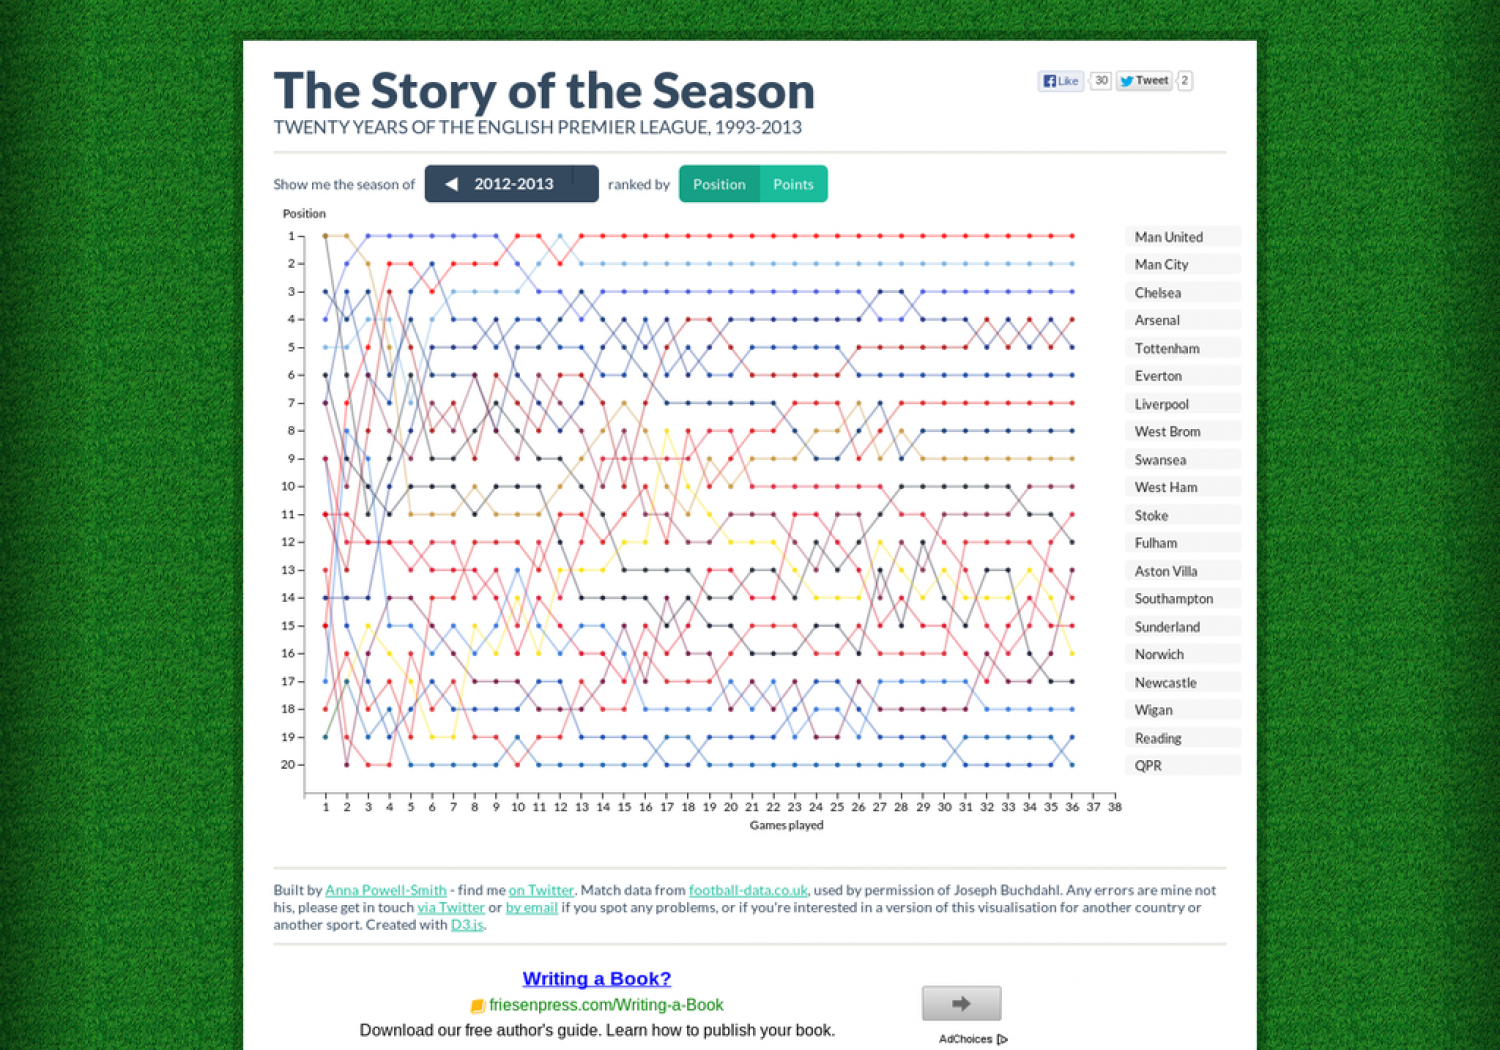 The Story of the Season Infographic